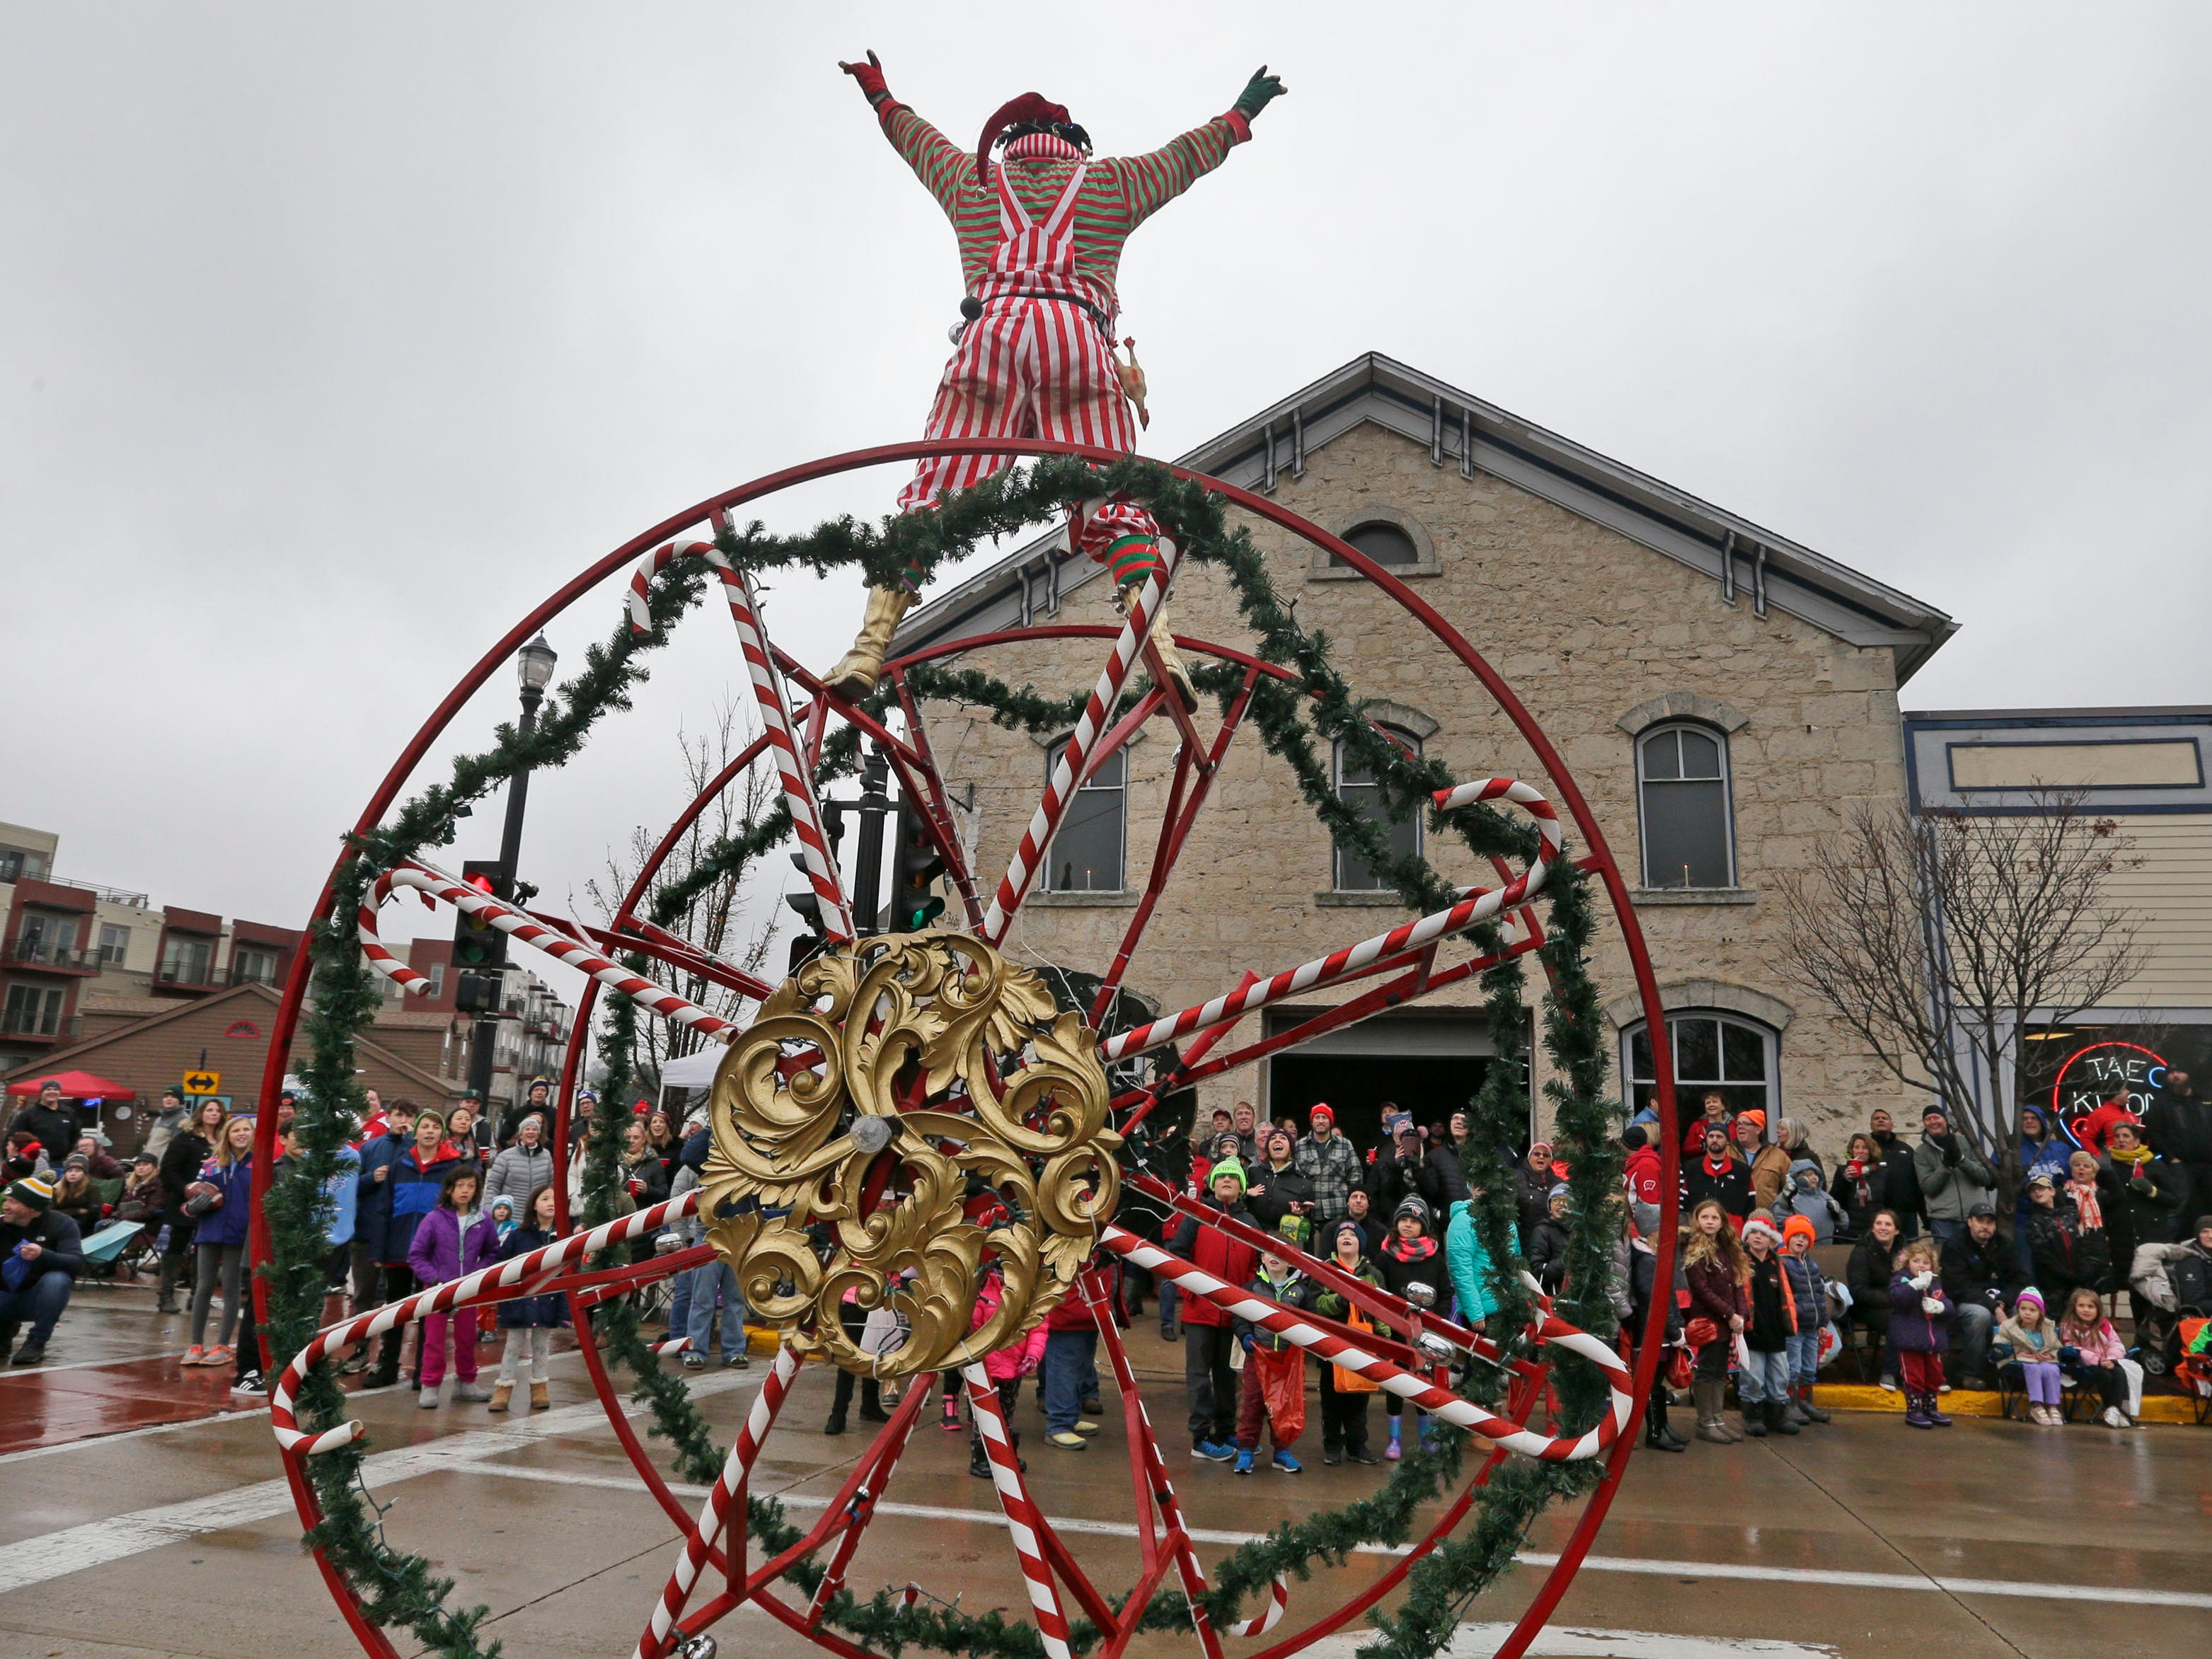 Rob Summerbell stands atop the wheel to cheers from the crowd.